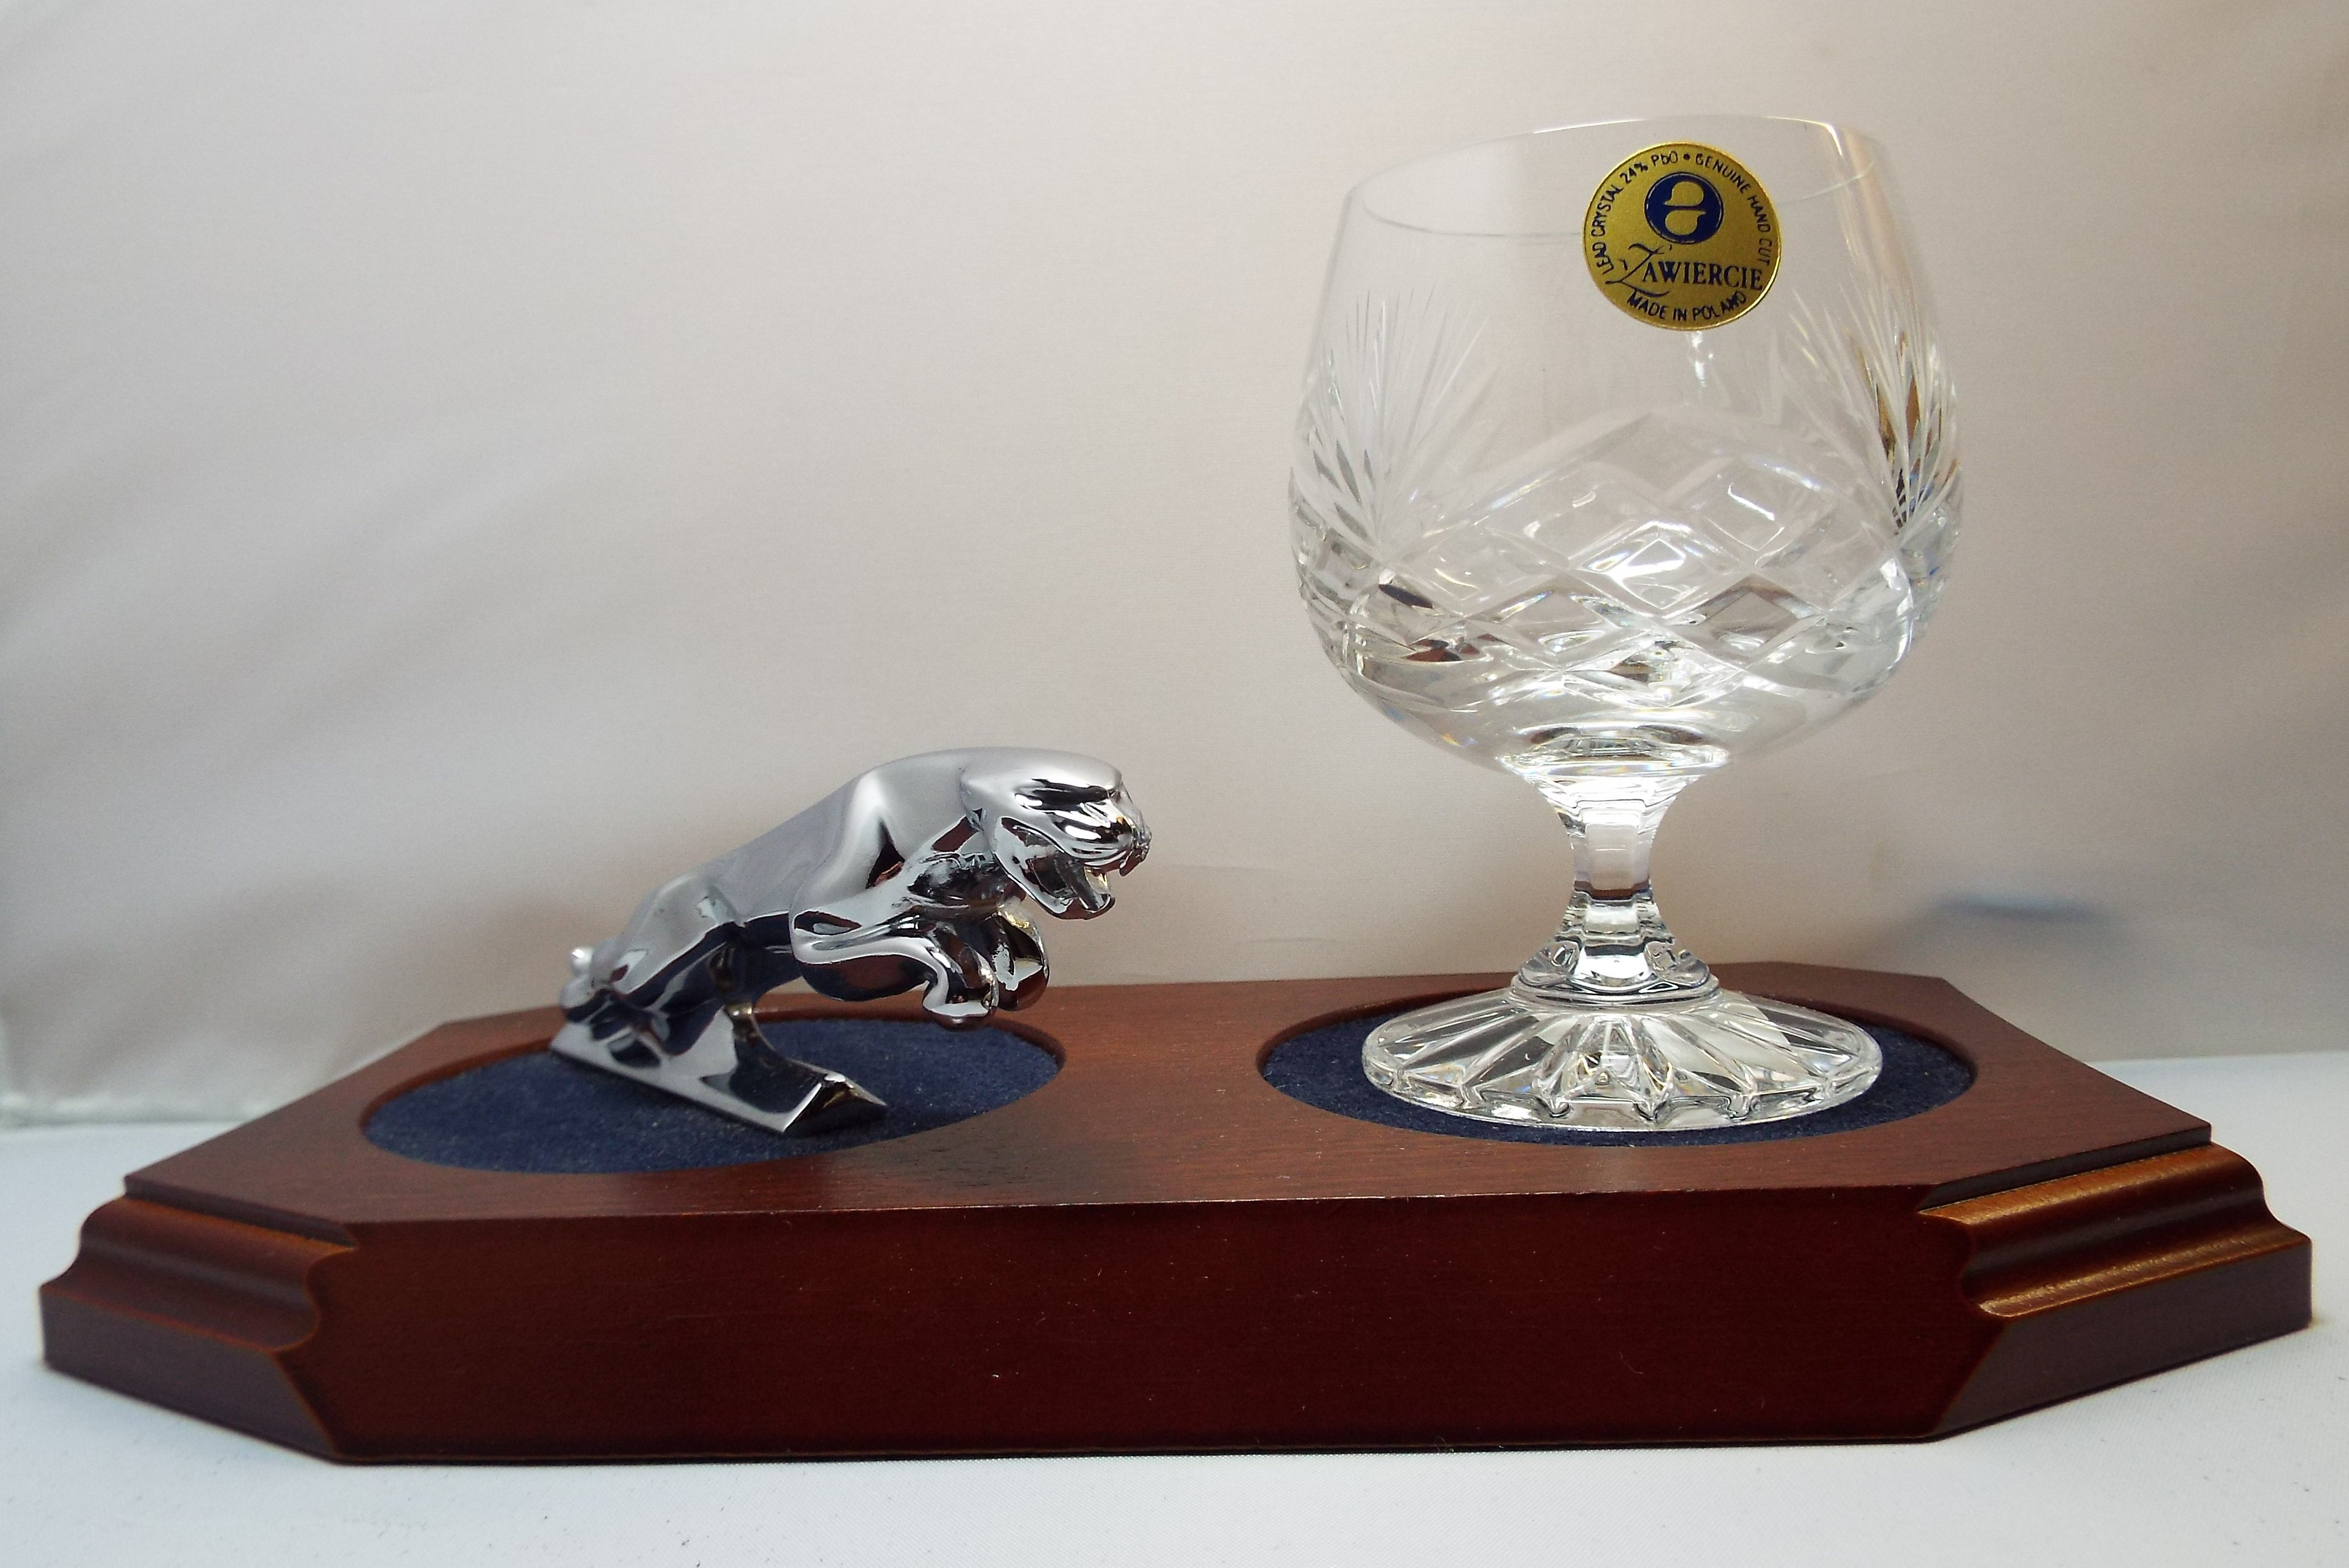 Small Chrome Plated Jaguar Mounted on a wood Plinth with One Lead Crystal Brandy Glass and Felt Coaster